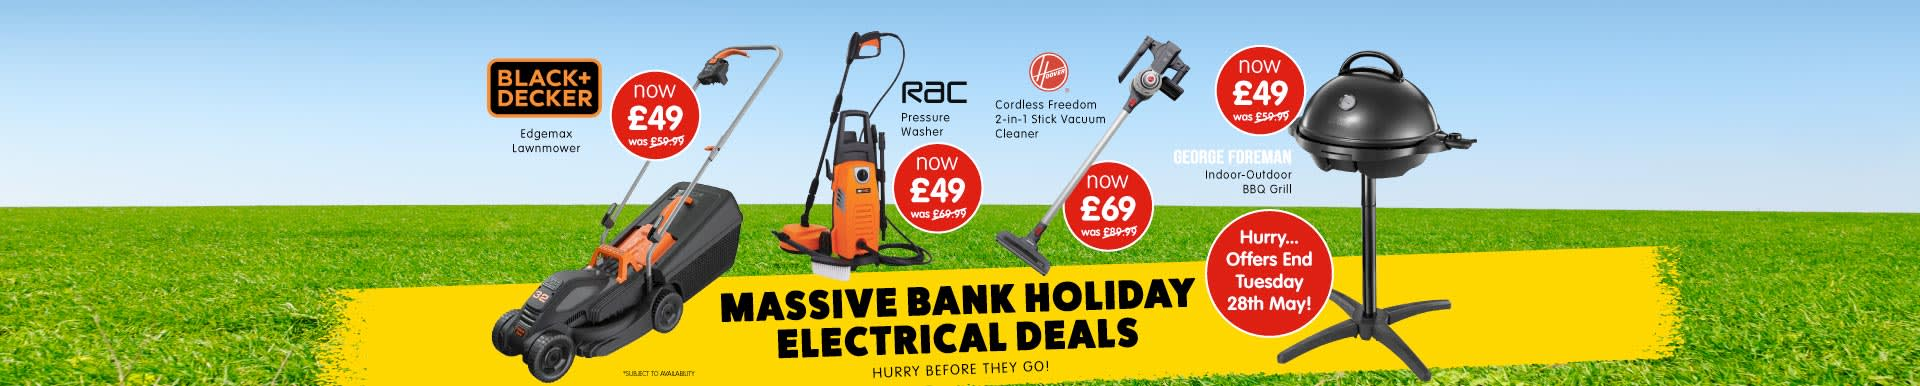 B&M Bank Holiday Electrical Deals.